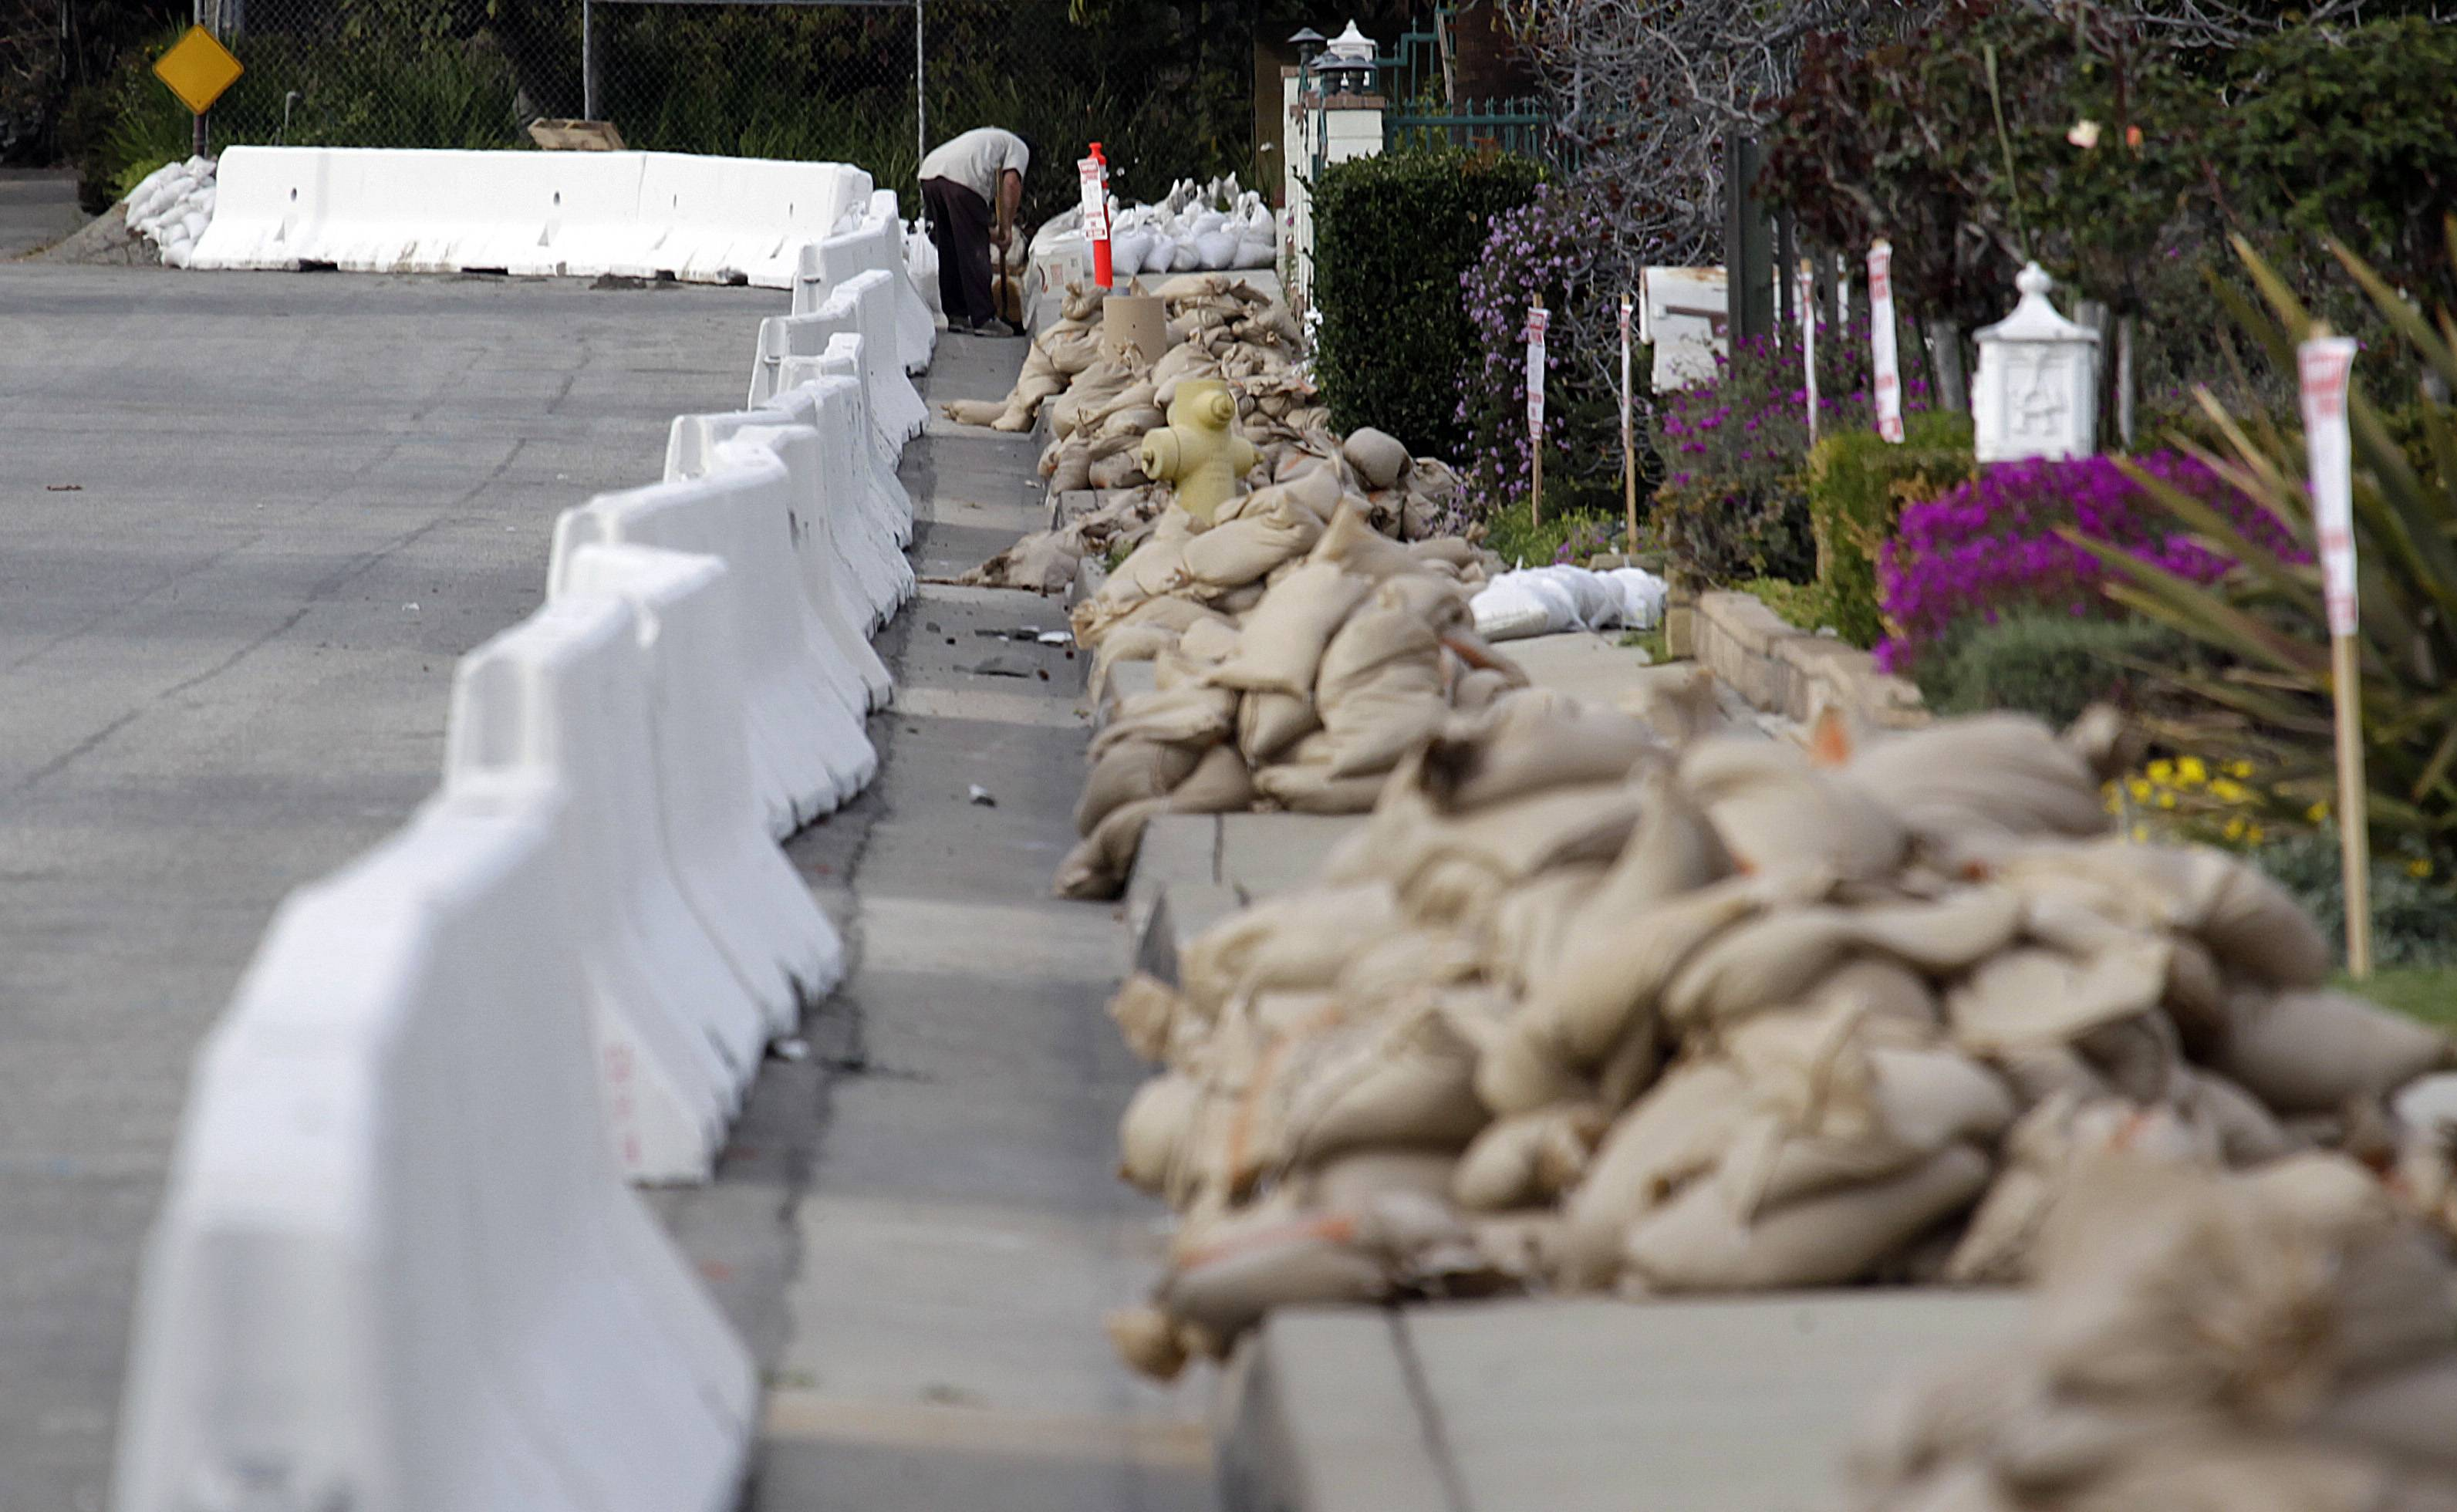 A man Thursday places sandbags at the top of a street lined with K-rail and sandbags in Glendora, Calif., as the city and residents prepare for possible flooding. Mandatory evacuation orders have been issued for 1,000 homes in two foothill suburbs east of Los Angeles in advance of a powerful storm. The cities of Glendora and Azusa issued the orders at midday Thursday for homes that could be endangered by debris flows from nearly 2,000 acres of steep mountain slopes burned by a wildfire last month. For days, both cities have been making extensive preparations including sandbagging. California received widespread rain Wednesday and early Thursday from the first of two back-to-back storms. The more powerful second storm is due overnight.